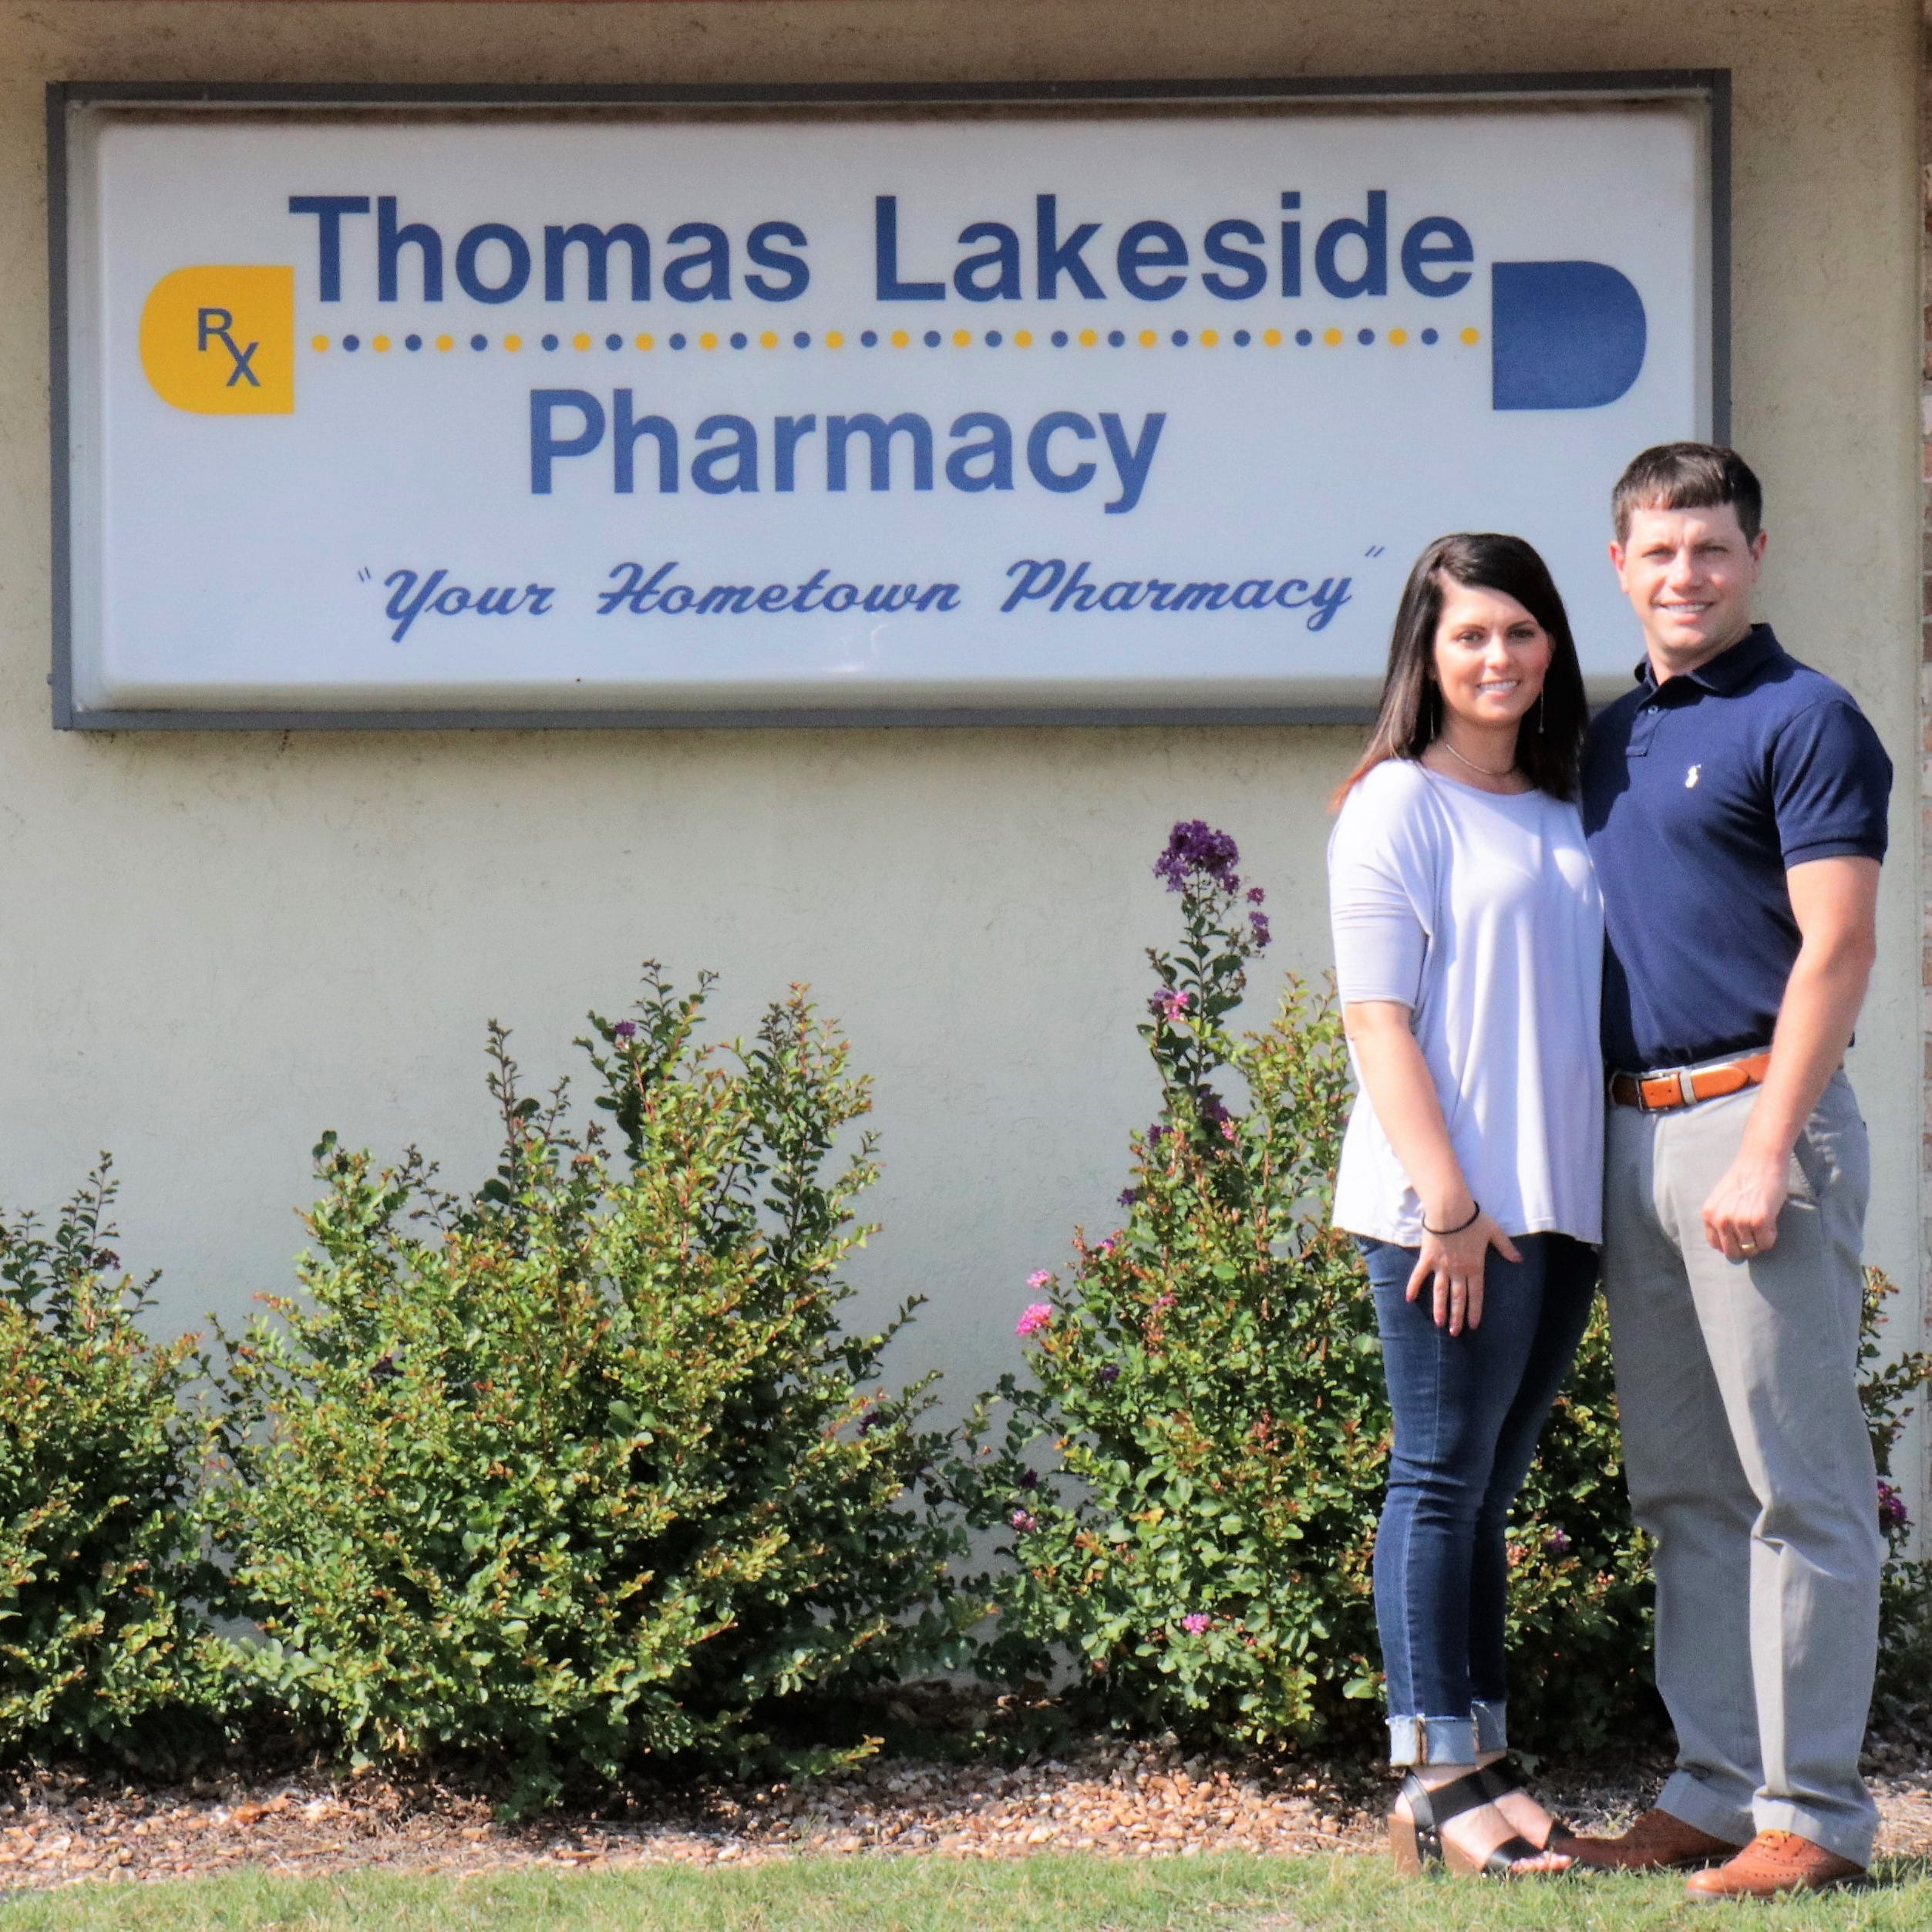 Lakeside Pharmacy has new owners